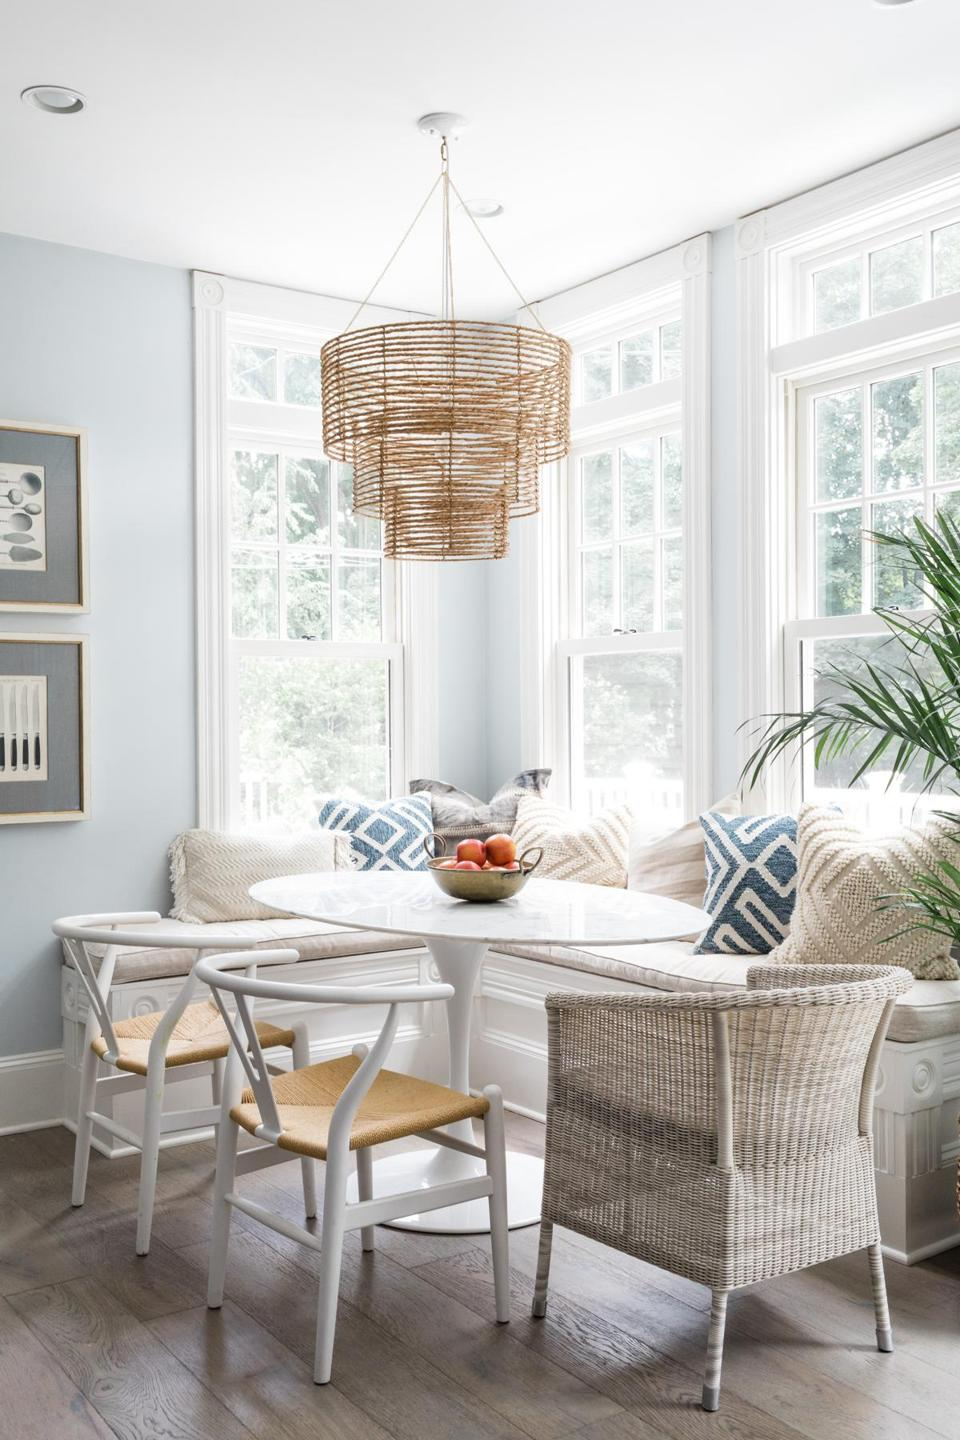 Minns never misses a chance to hang a bohemian-style chandelier. The one in the breakfast nook is by Selamat Designs.